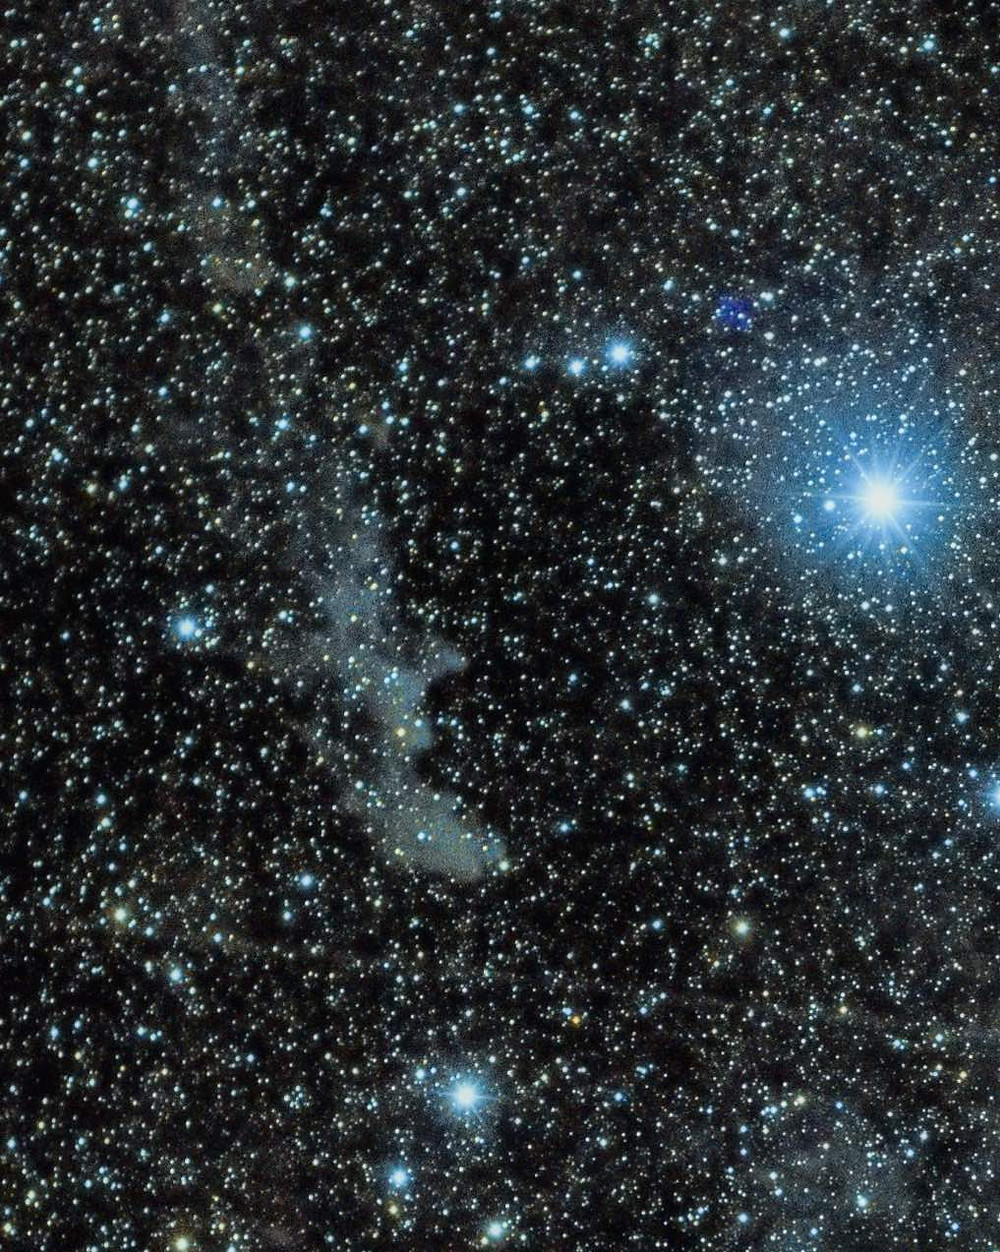 The Witch Head Nebula widefield DSLR astrophotography using a Canon t3i and a EF 50mm lens at f/1.8